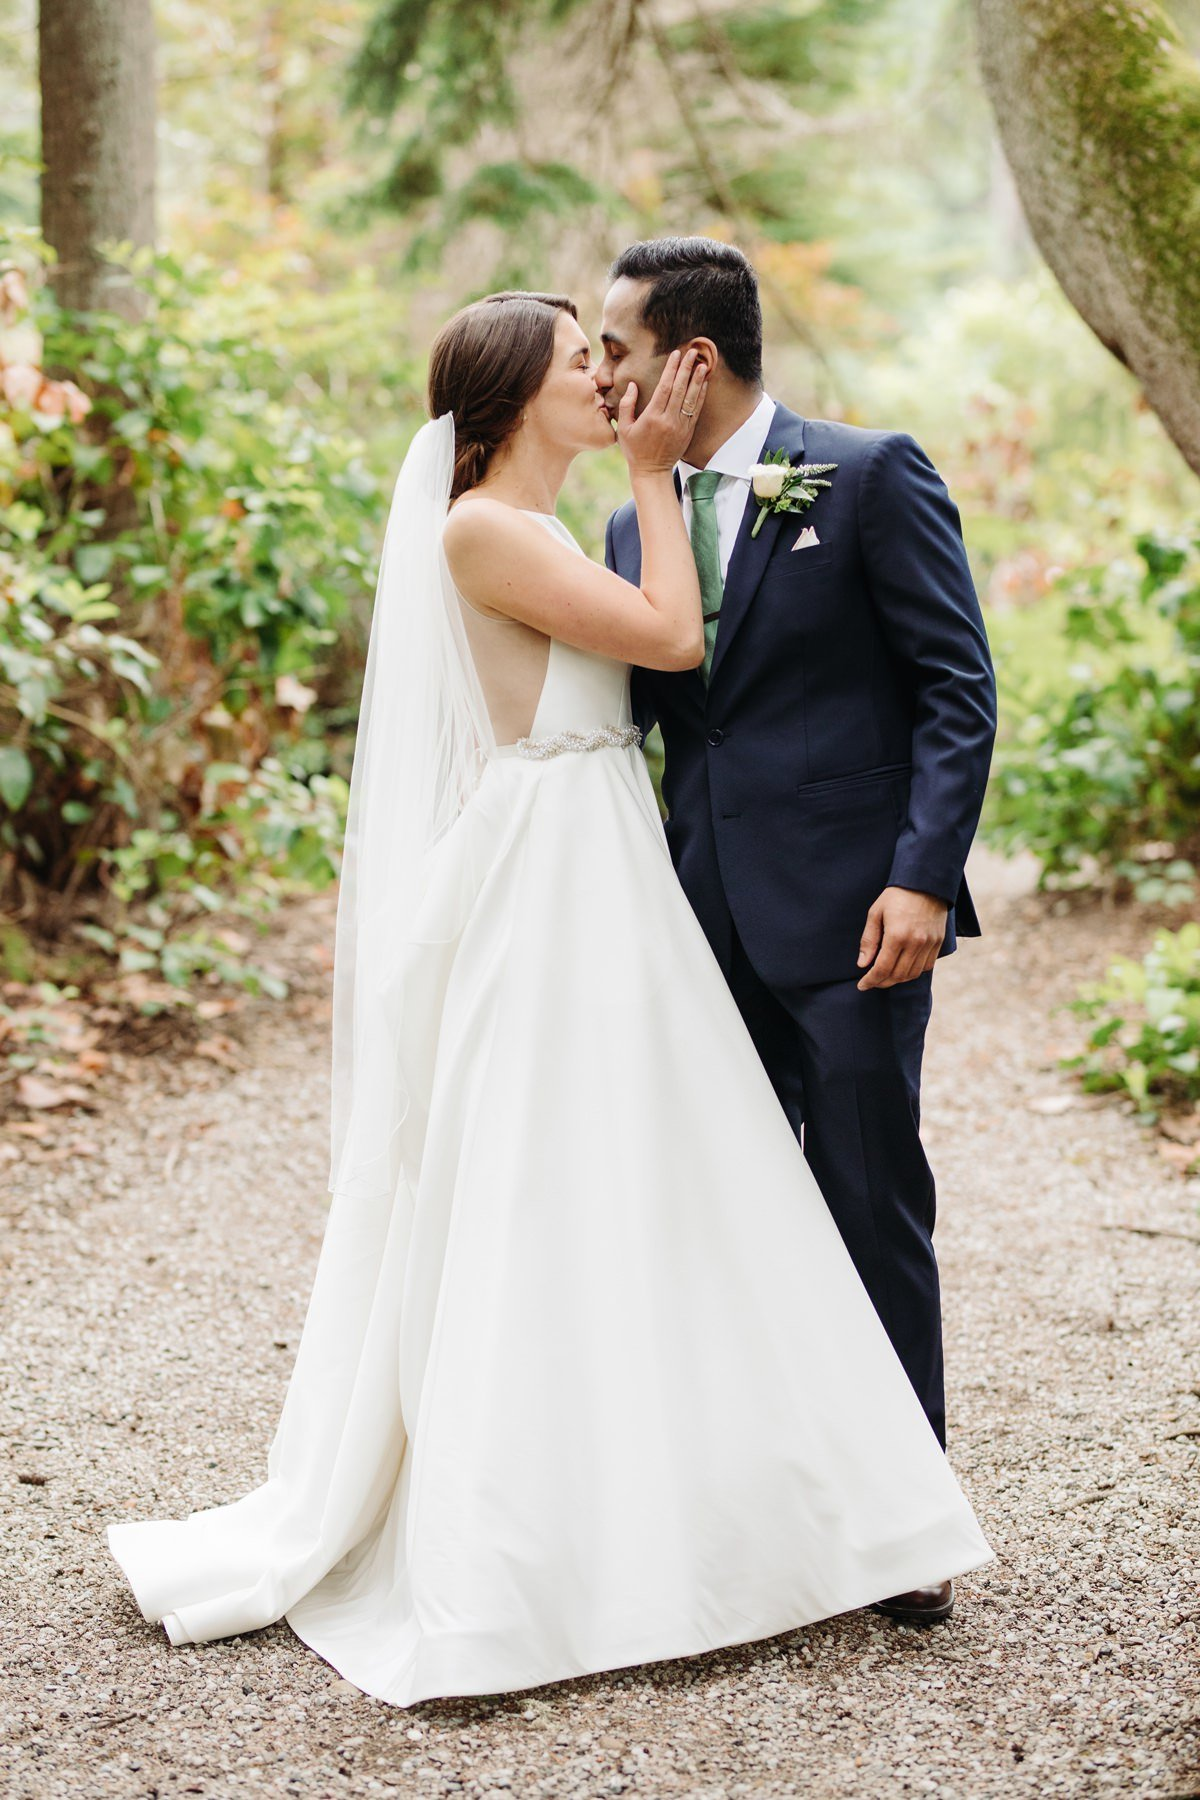 islandwood-bainbridge-island-wedding-photographer-seattle-cameron-zegers-0190